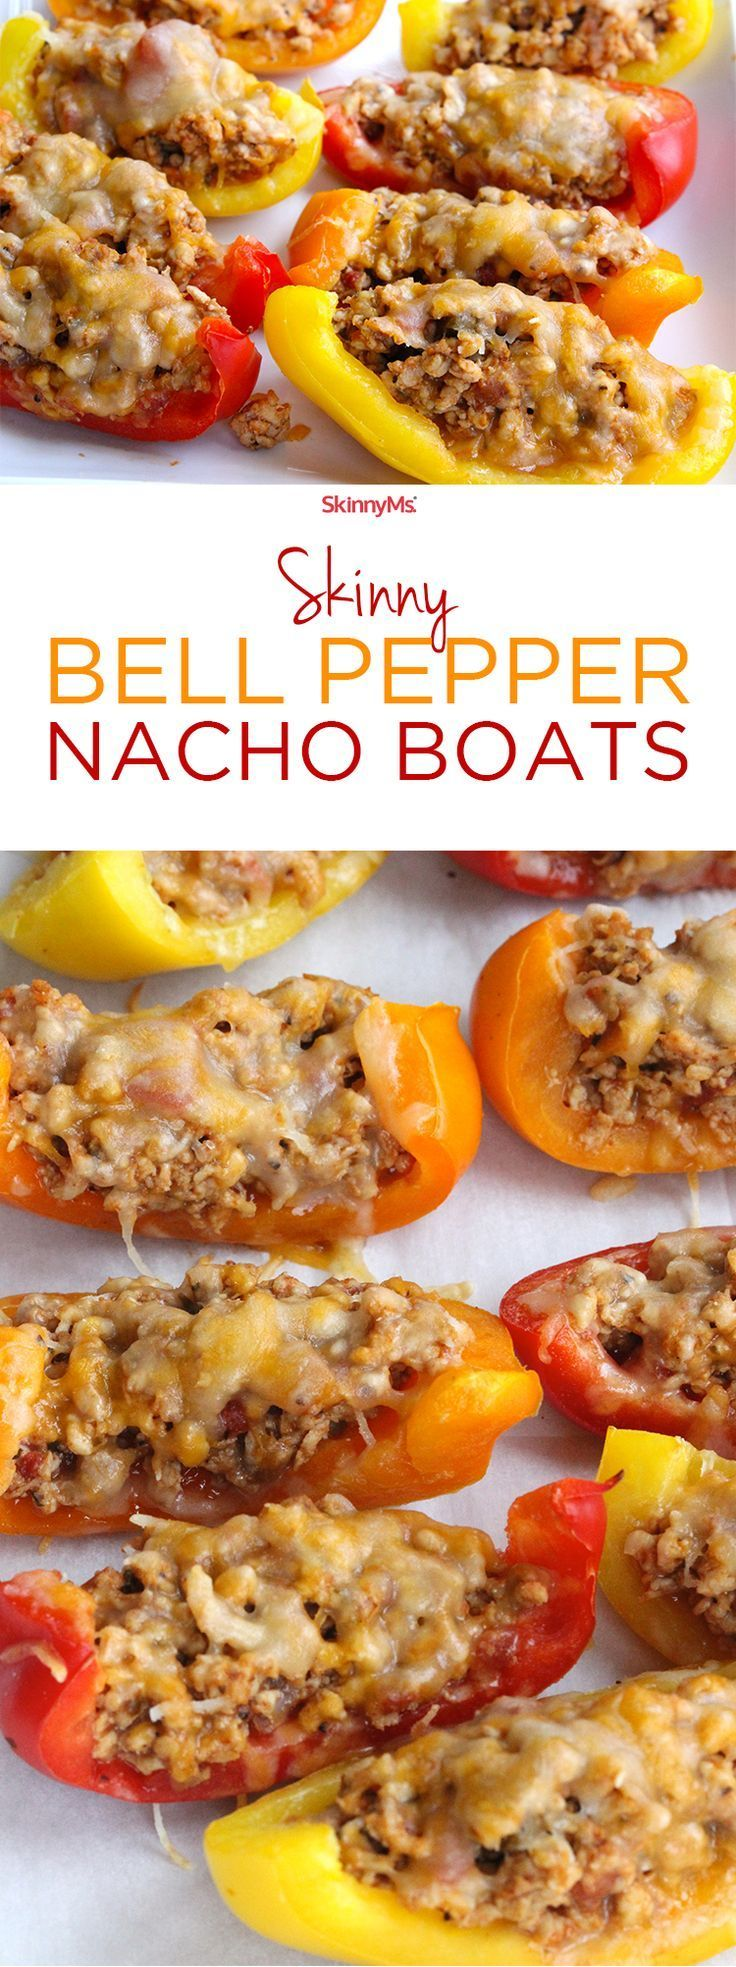 These Skinny Bell Pepper Nacho Boats are  Low-Carb, Low-Calorie, High Protein…